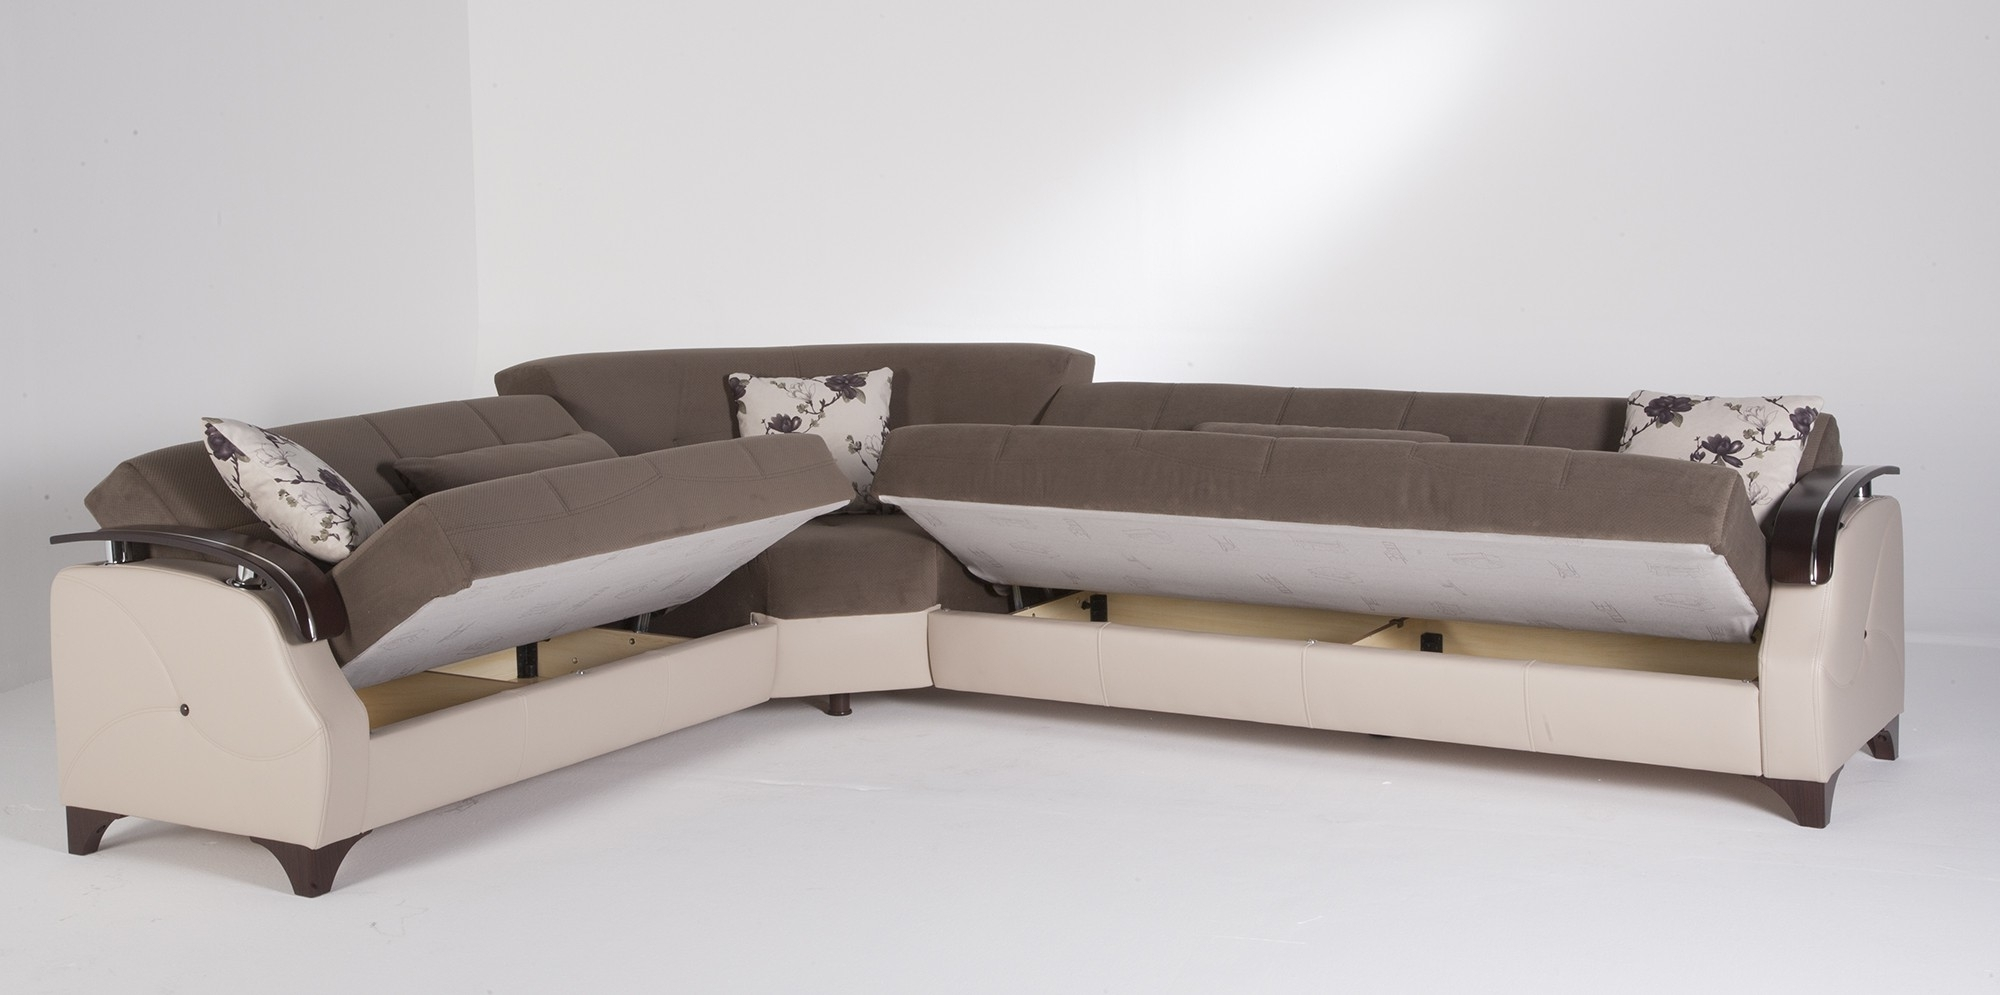 Famous Sectional Sofa Design: Cheap Sectional Sofas Furniture Design Intended For L Shaped Sectional Sleeper Sofas (View 3 of 20)